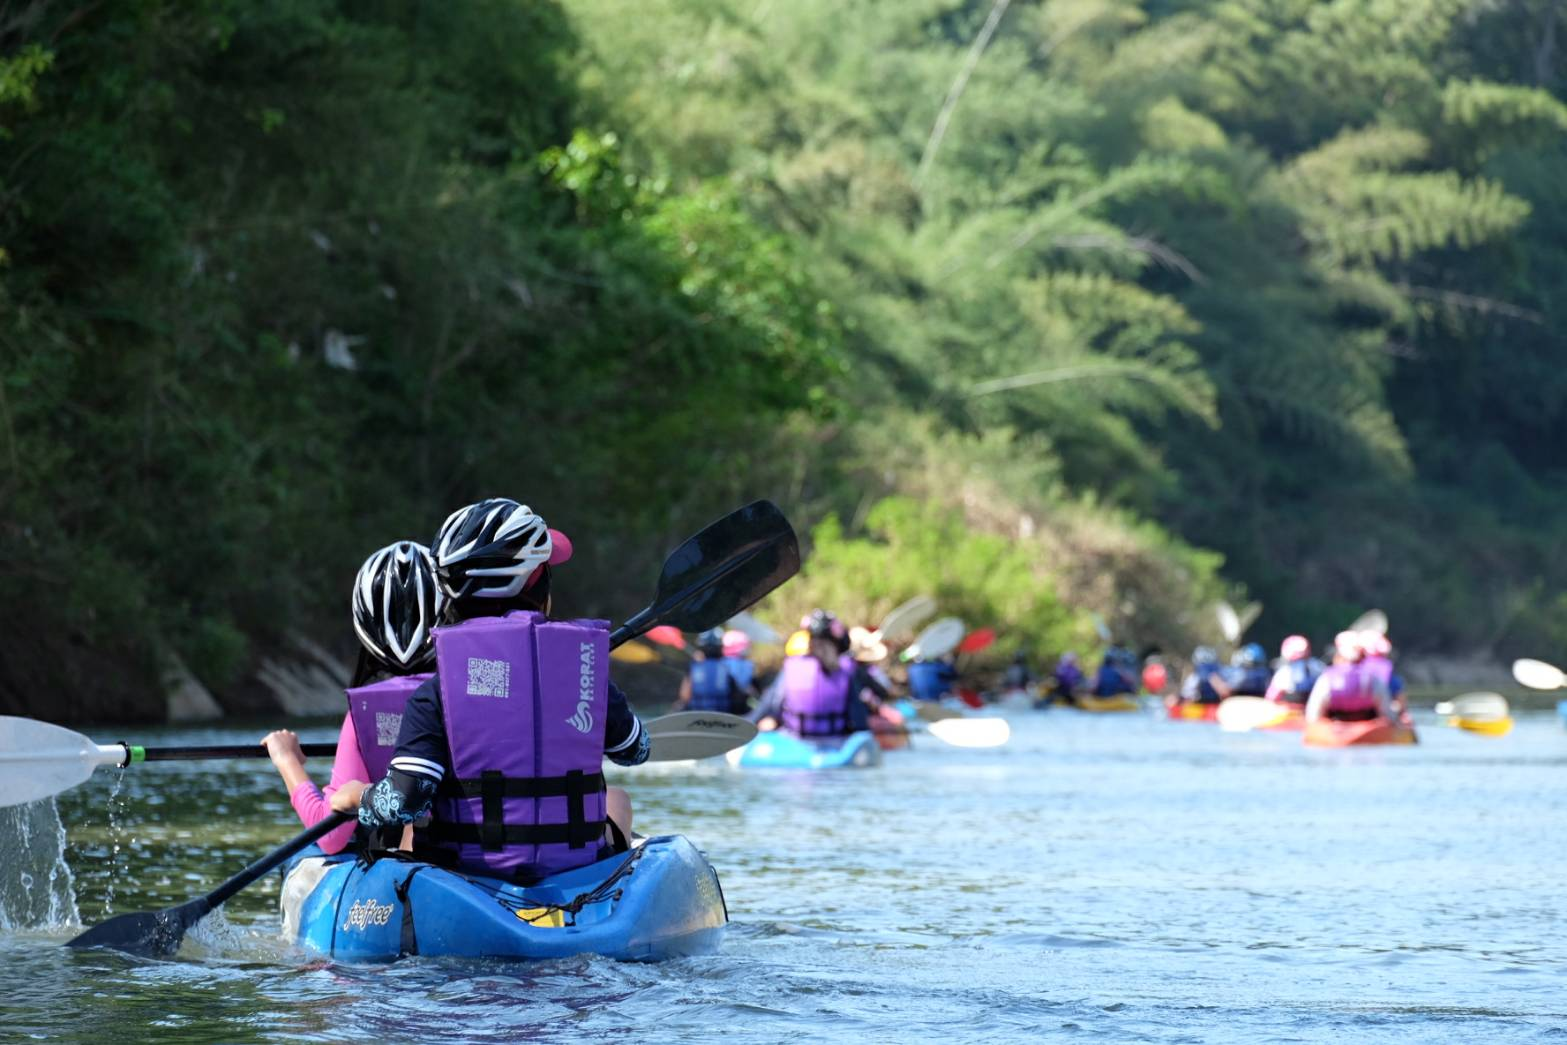 Kayaking on the beautiful Pasak River